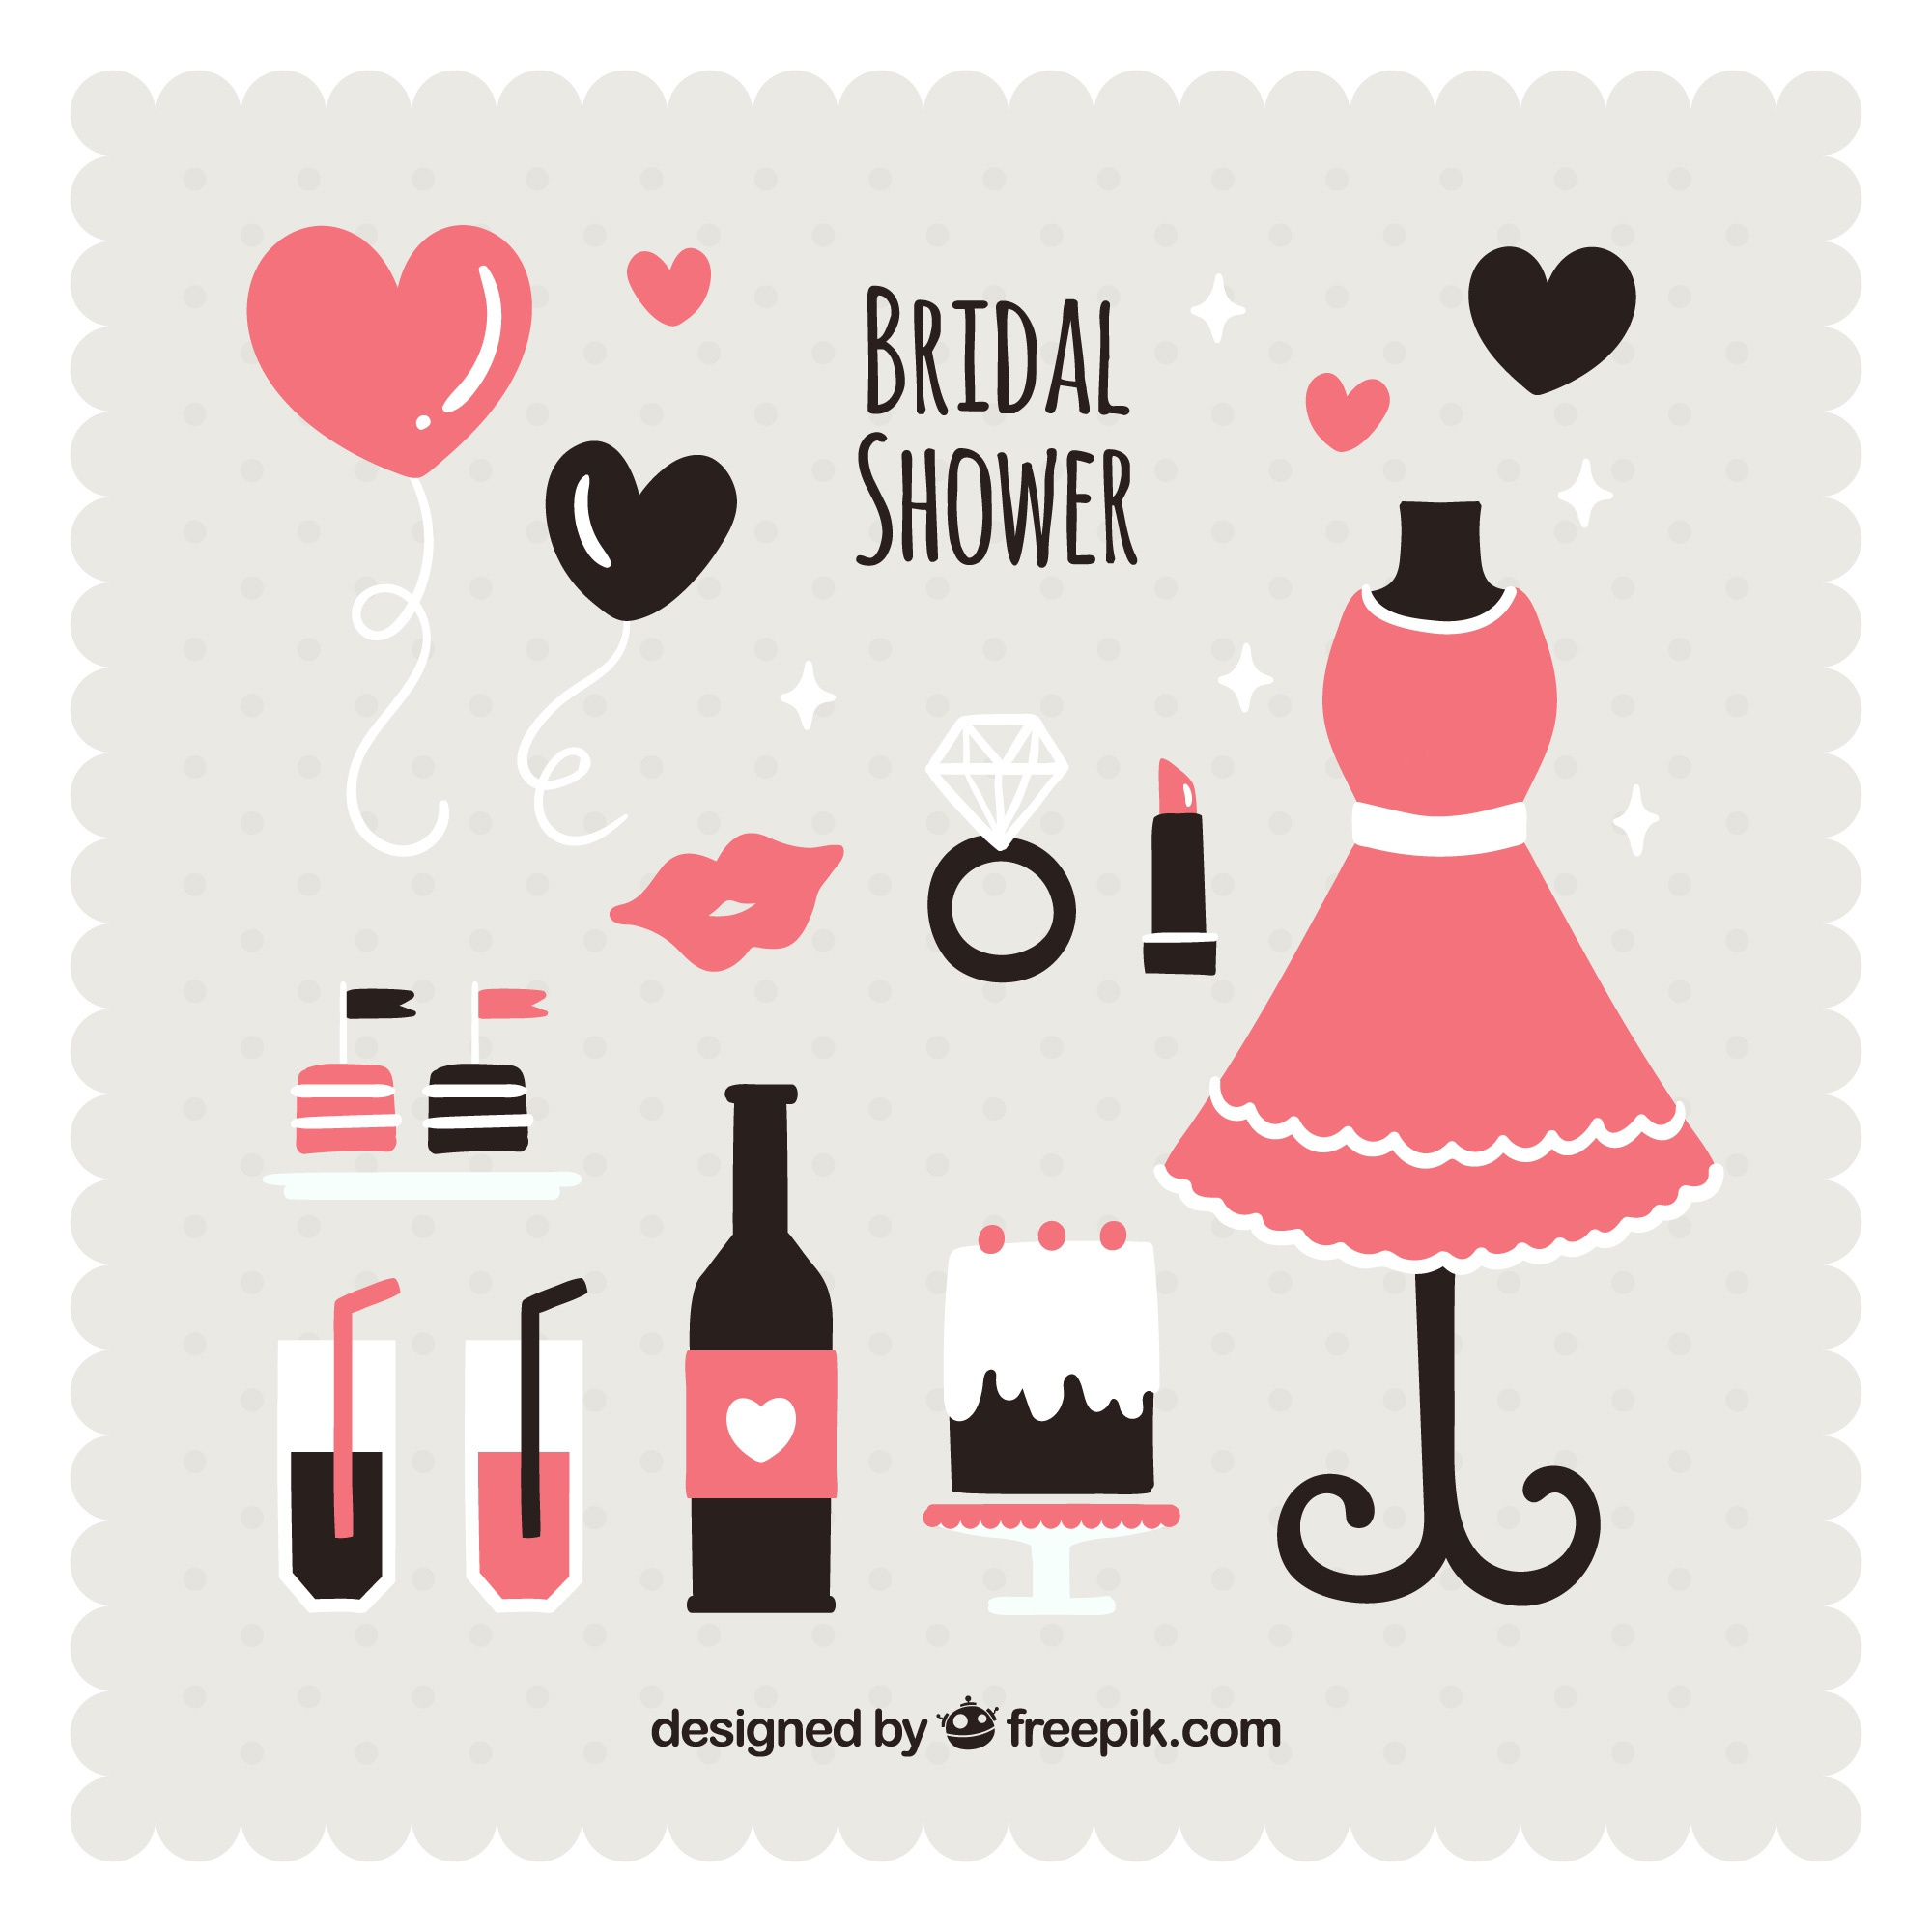 Black and pink wedding accessories in flat design